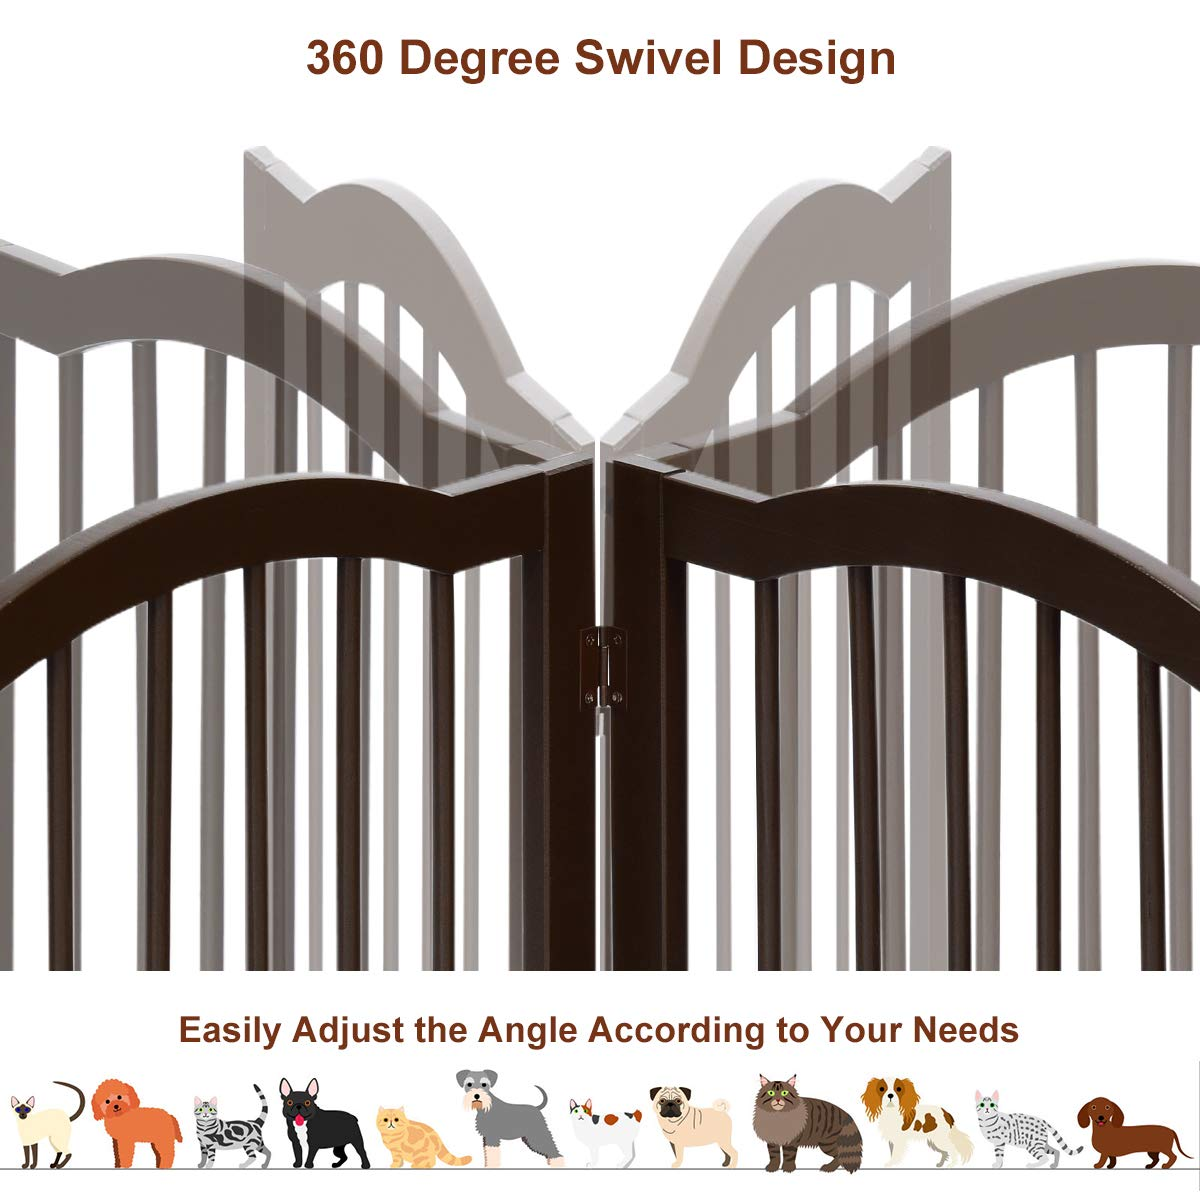 Giantex Wooden Pet Gate, Freestanding Dog Gates for House Doorway Stairs, Foldable Tall Panels for Large Pets, Indoor Pet Puppy Safety Fence with Arched Top, Fully Assembled 20 Wx36 H, 3 Panels